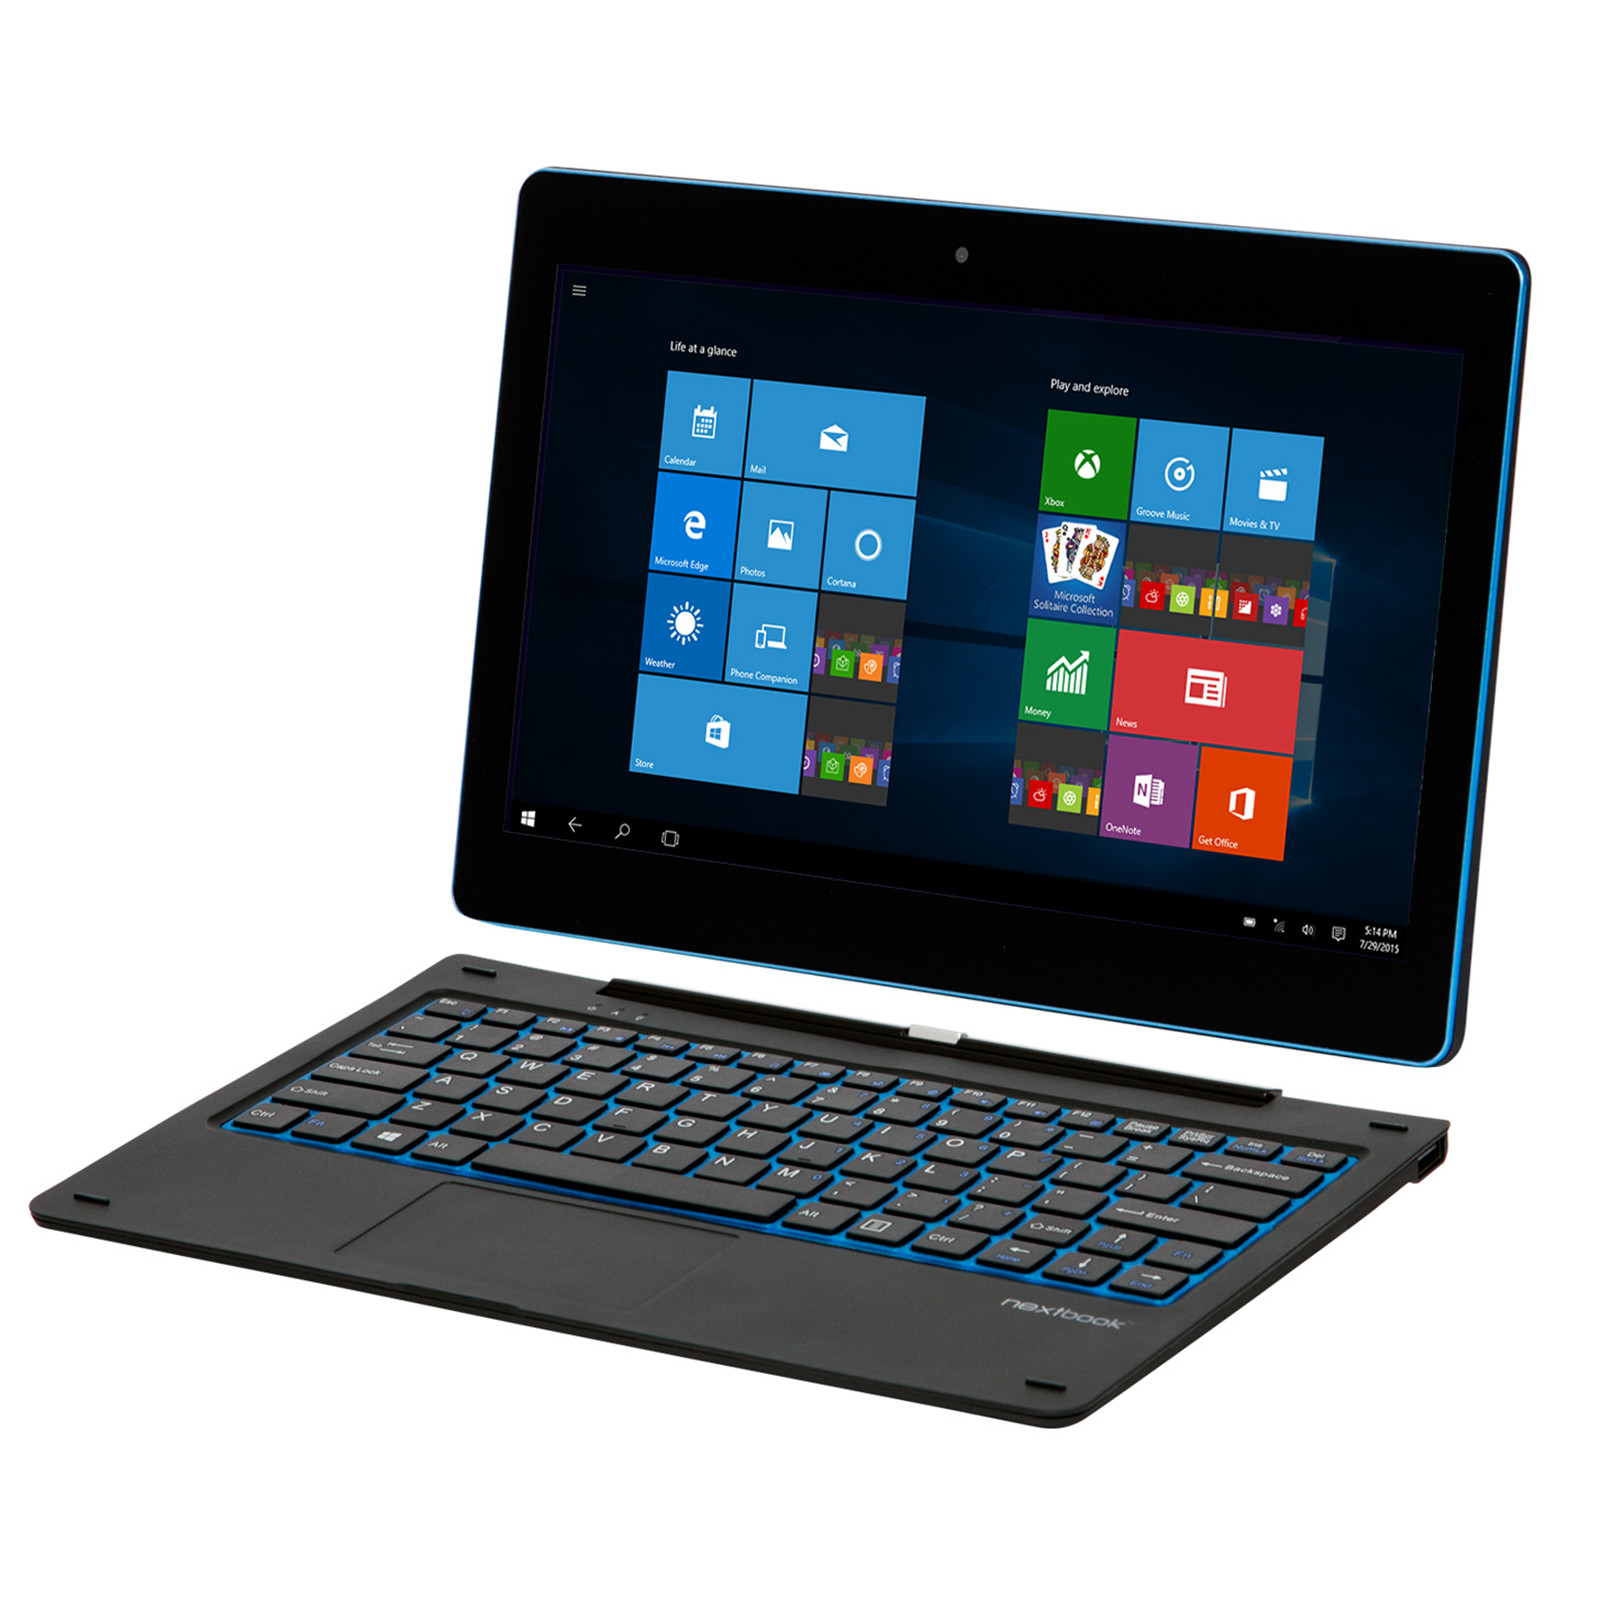 "Nextbook 11.6"" Tablet -Intel Atom Z3735G Quad Core 2GB 32GB storage WiFi w/Pogo Keyboard Win10 2MP Front & Back Camera"